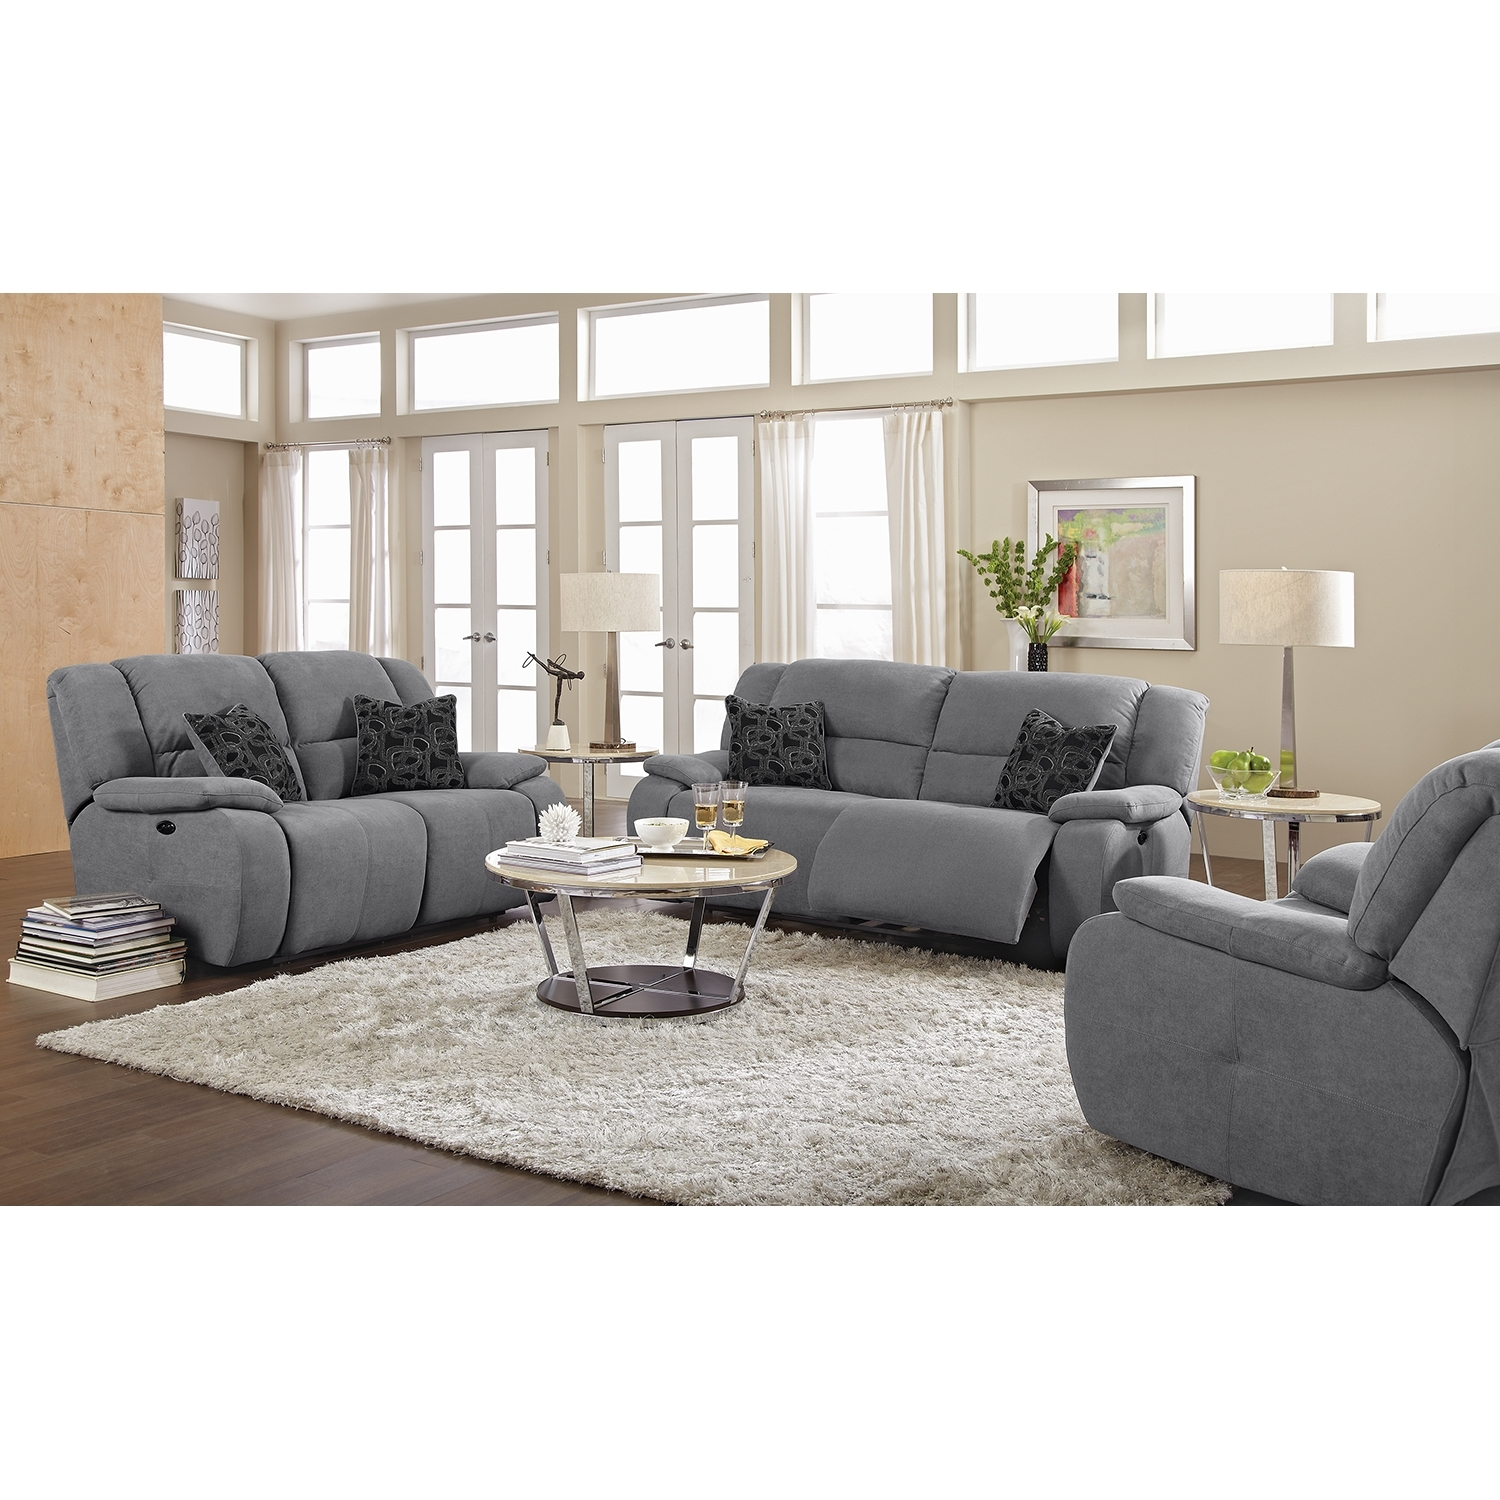 Featured Image of Grey Sofa Chairs